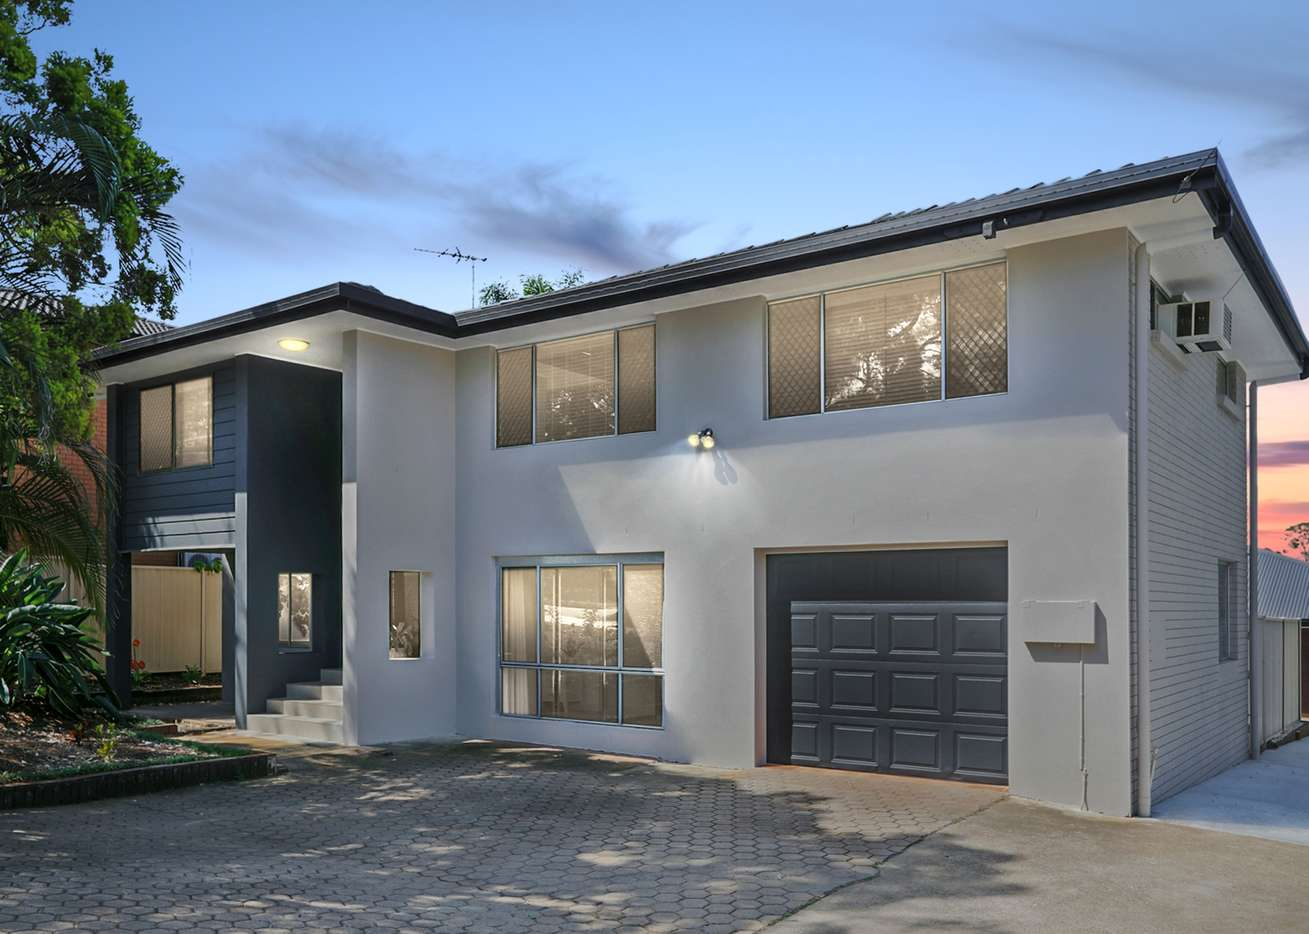 Main view of Homely house listing, 21A Charles Street, Birkdale, QLD 4159